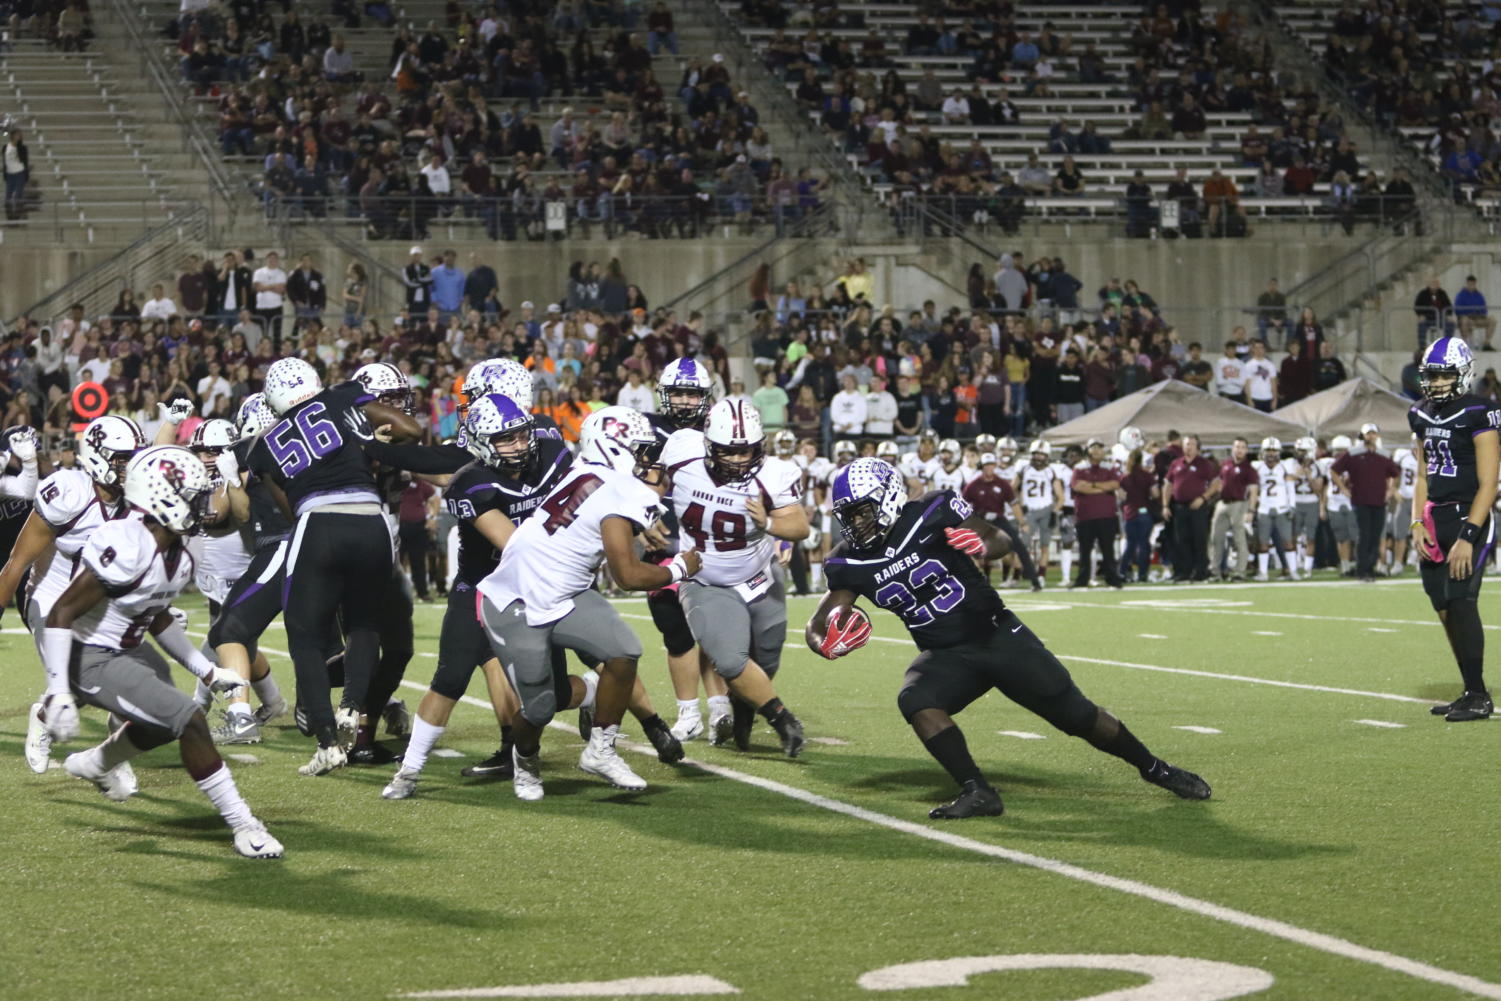 Jacoryan Isaac (11) rushes the ball against Round Rock on October 26th.